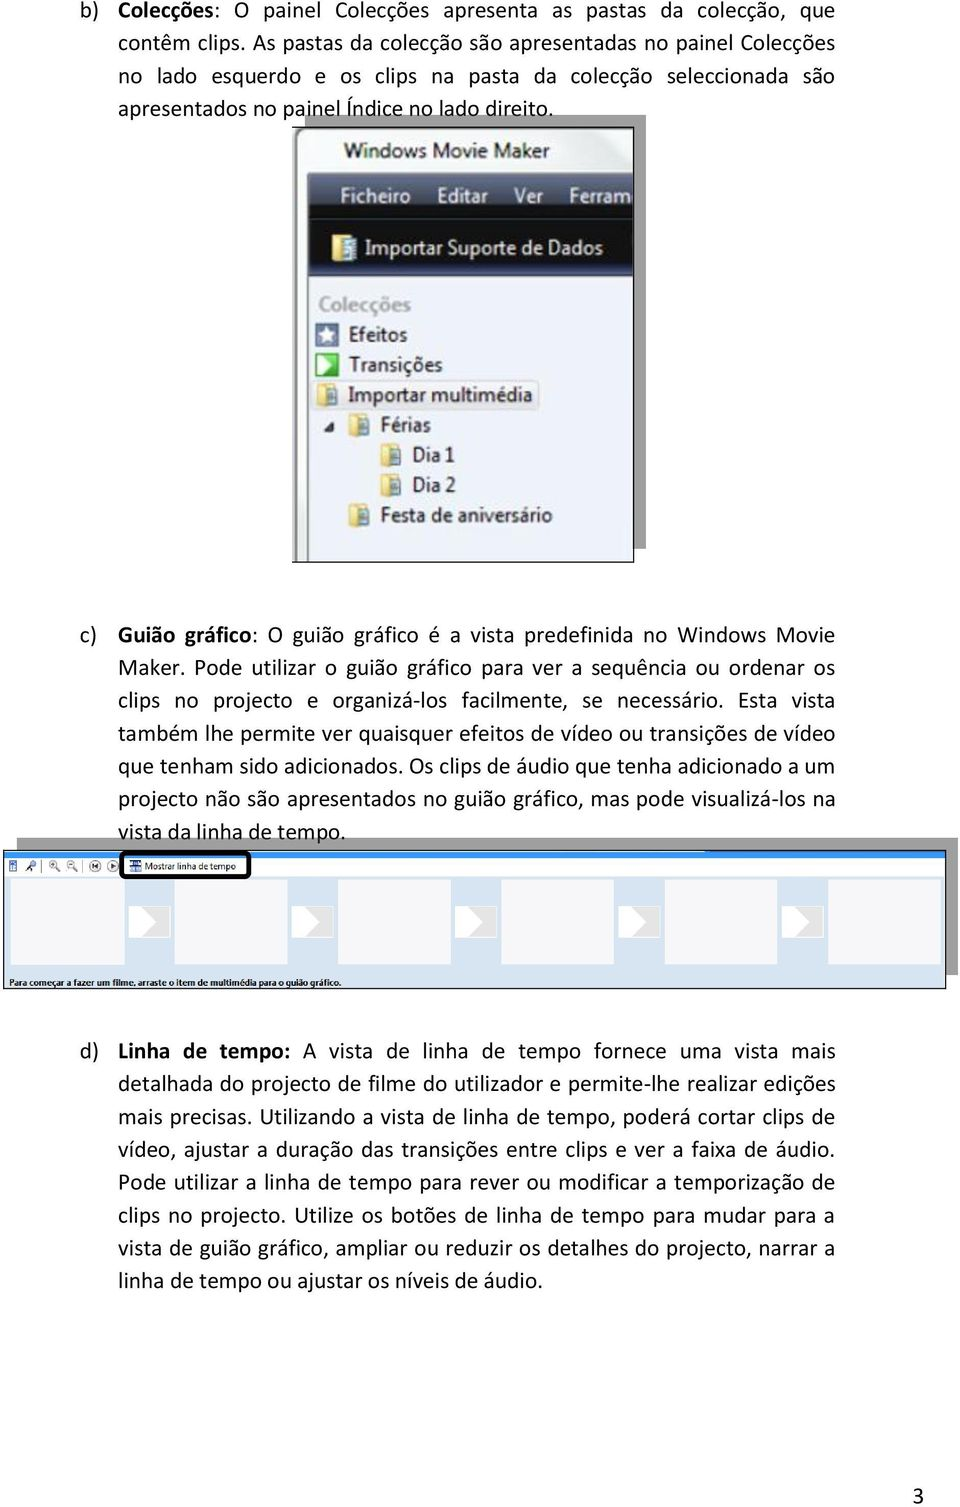 c) Guião gráfico: O guião gráfico é a vista predefinida no Windows Movie Maker.